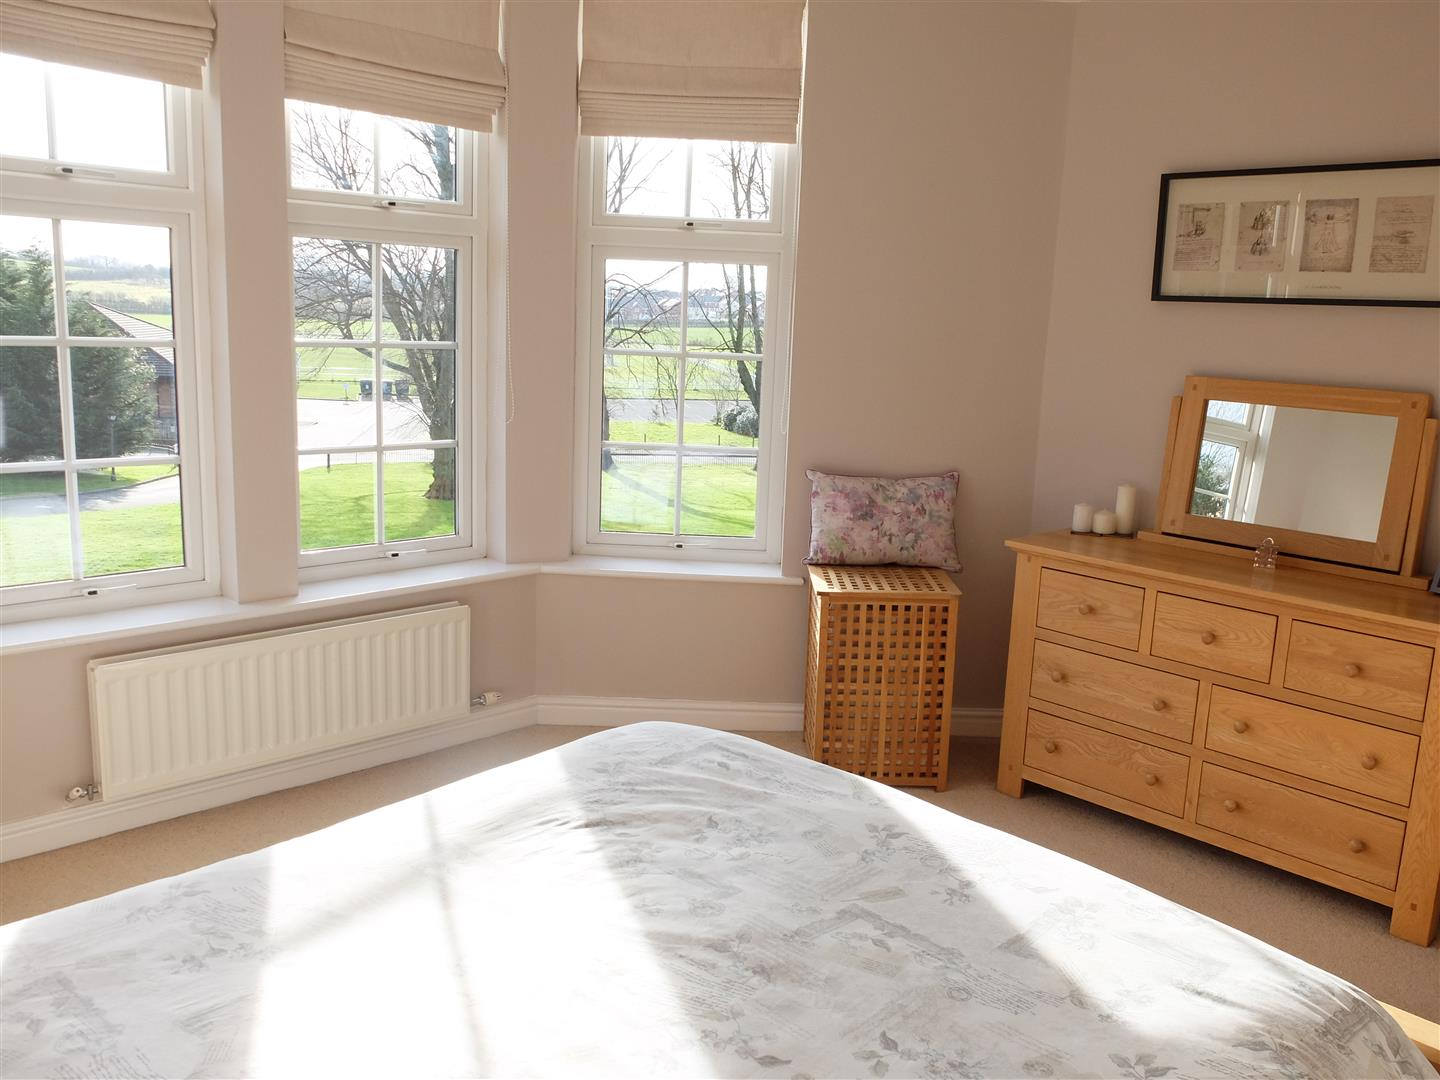 4 Bedrooms House On Sale 5 Oval Court Carlisle 200,000